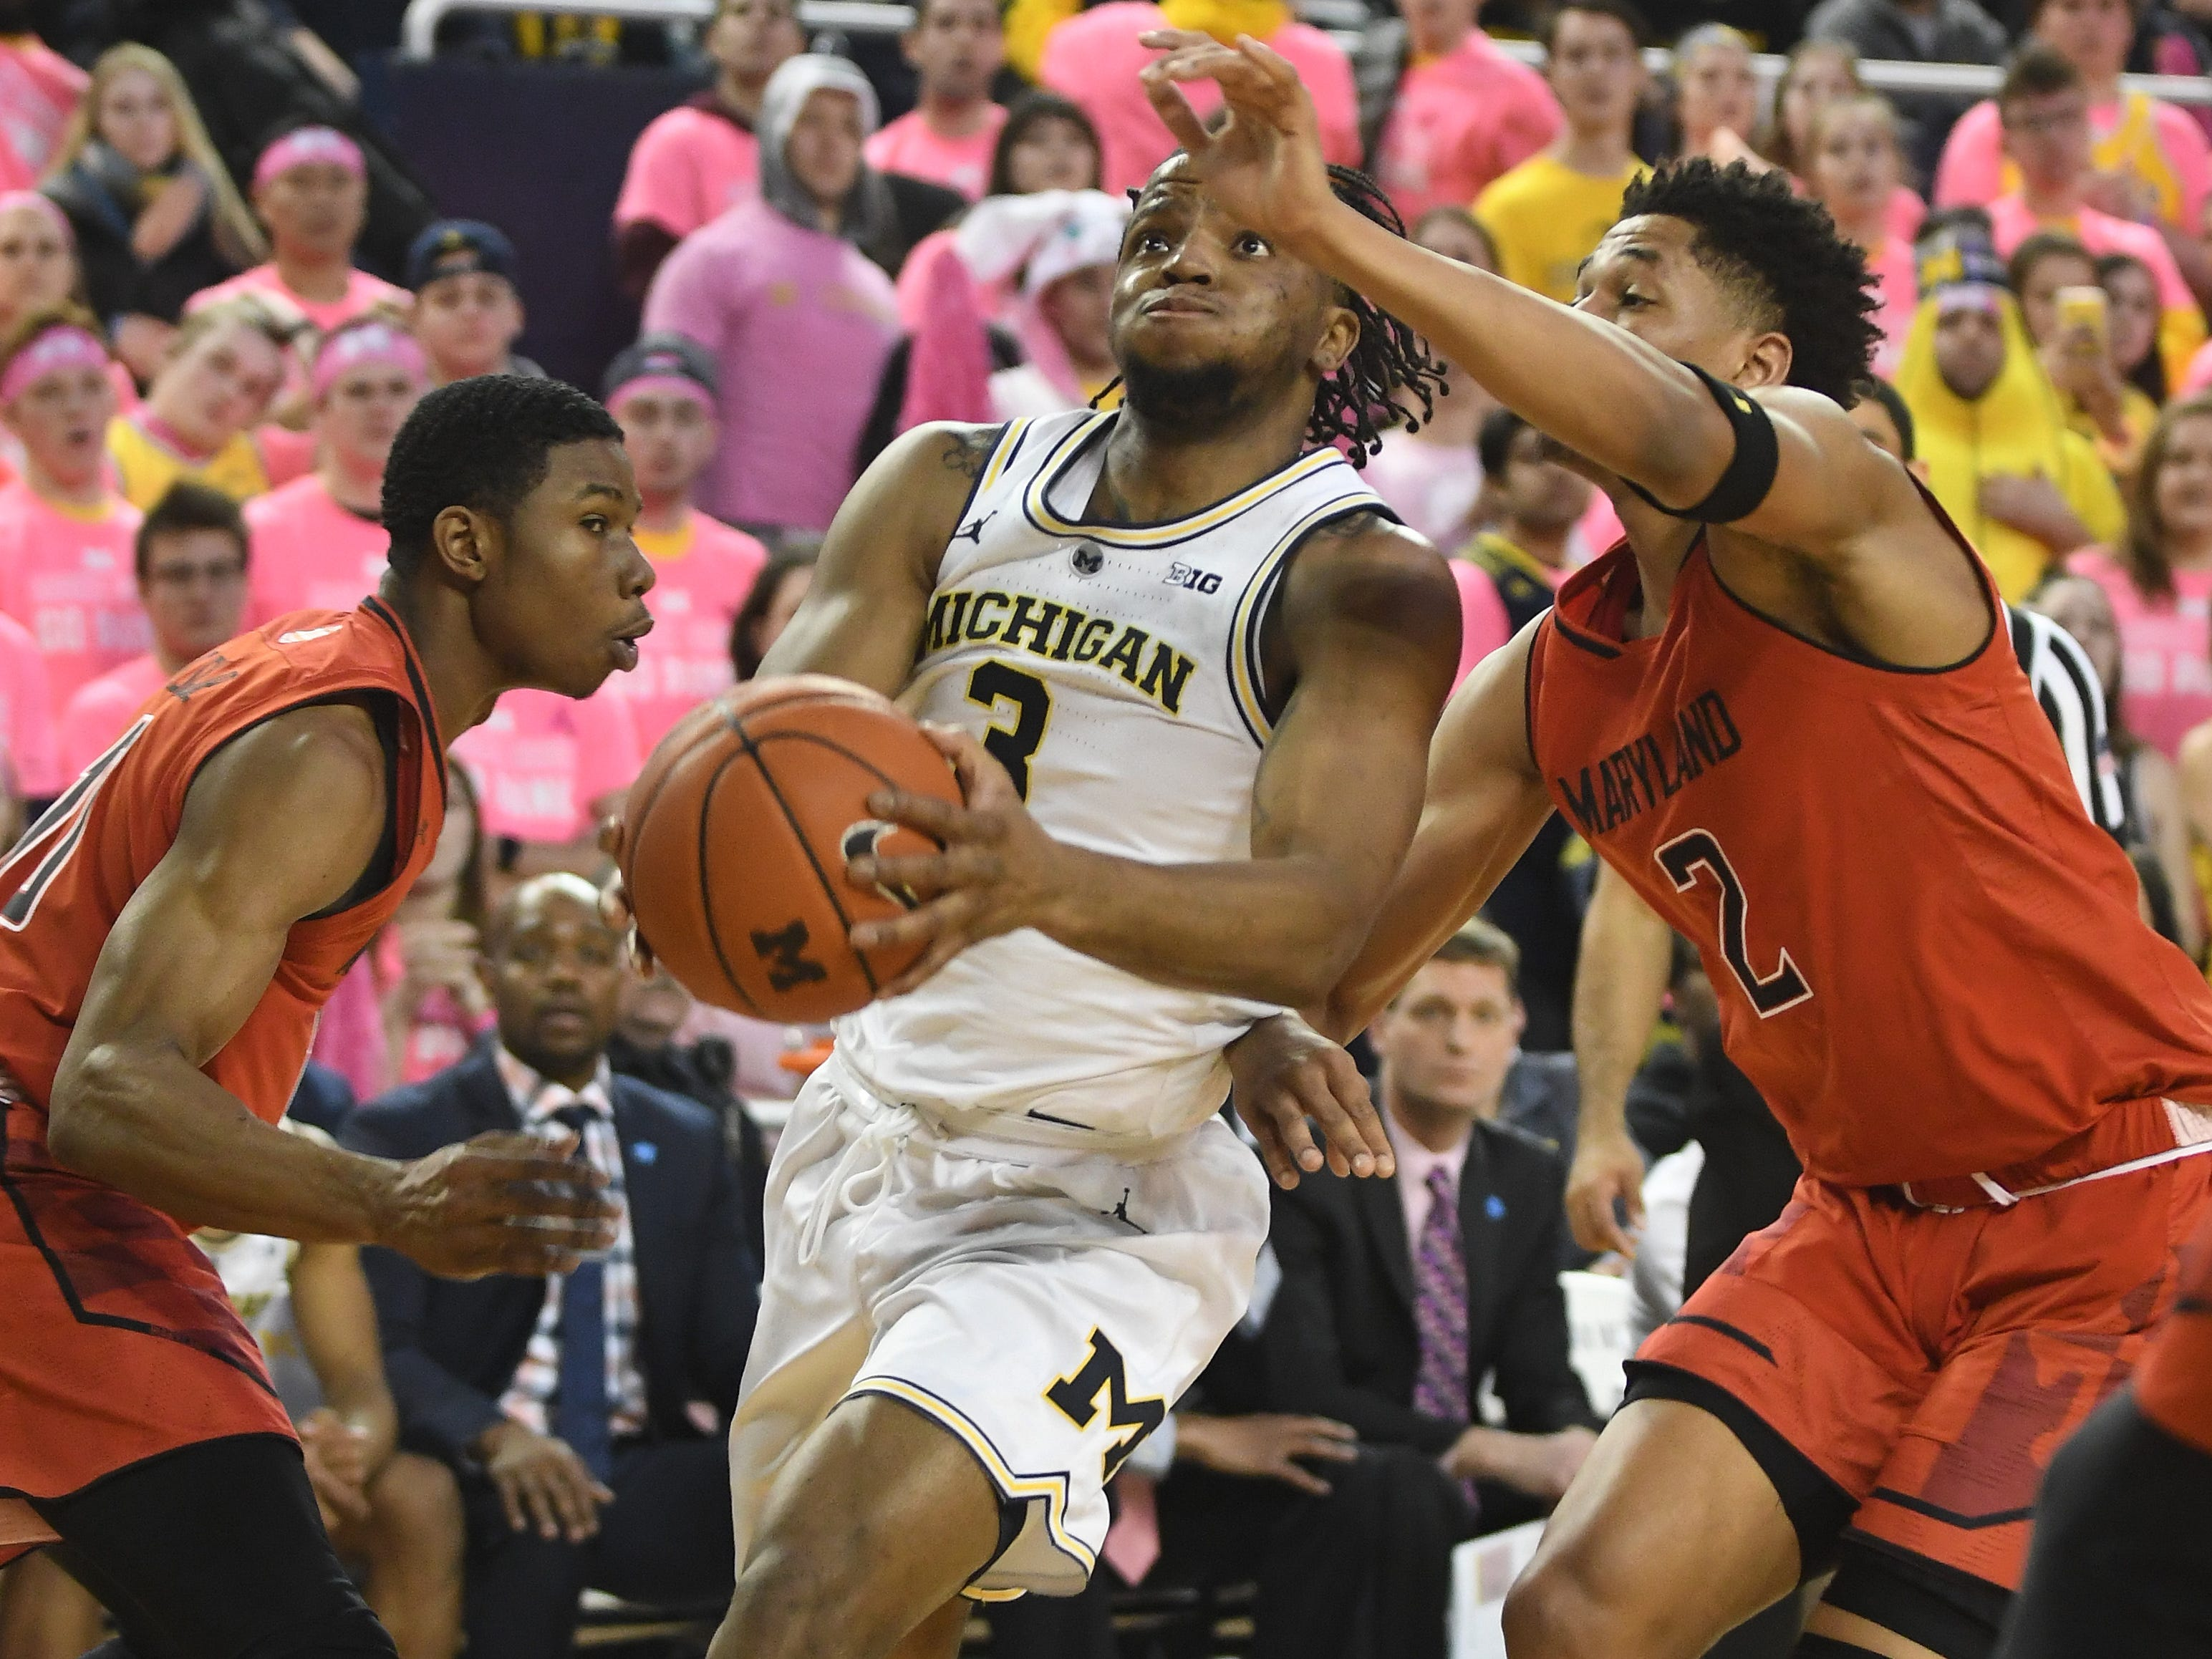 Michigan's Zavier Simpson drives to the hoop past Maryland's Aaron Wiggins in the second half.